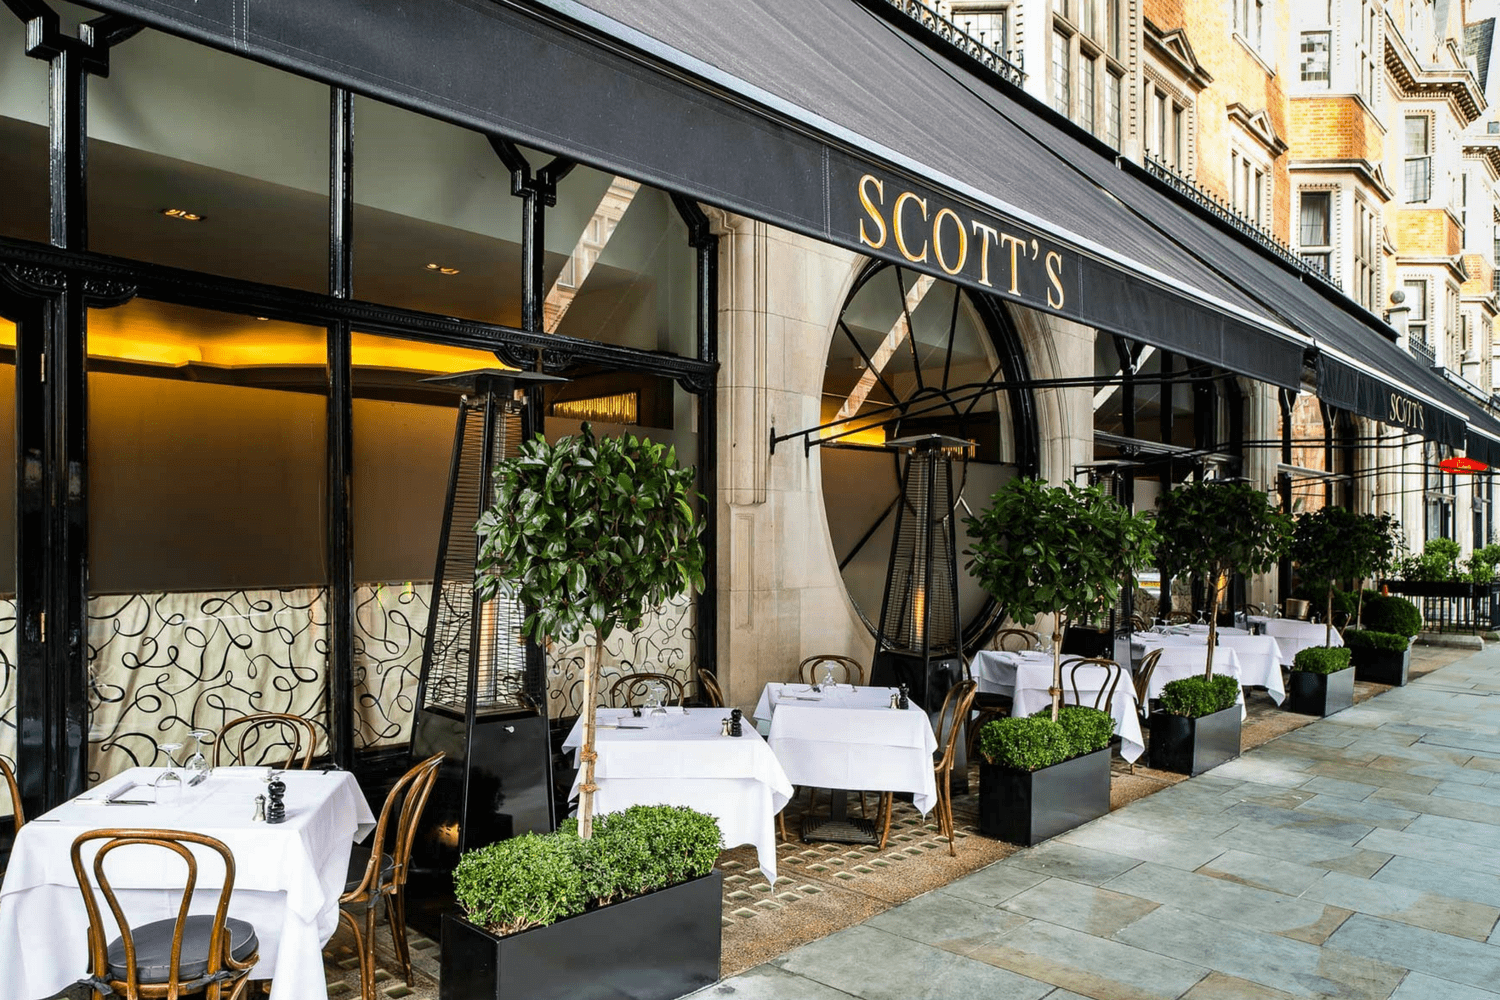 Scott's terrace, outside dining in London, Fish and Seafood Restaurant